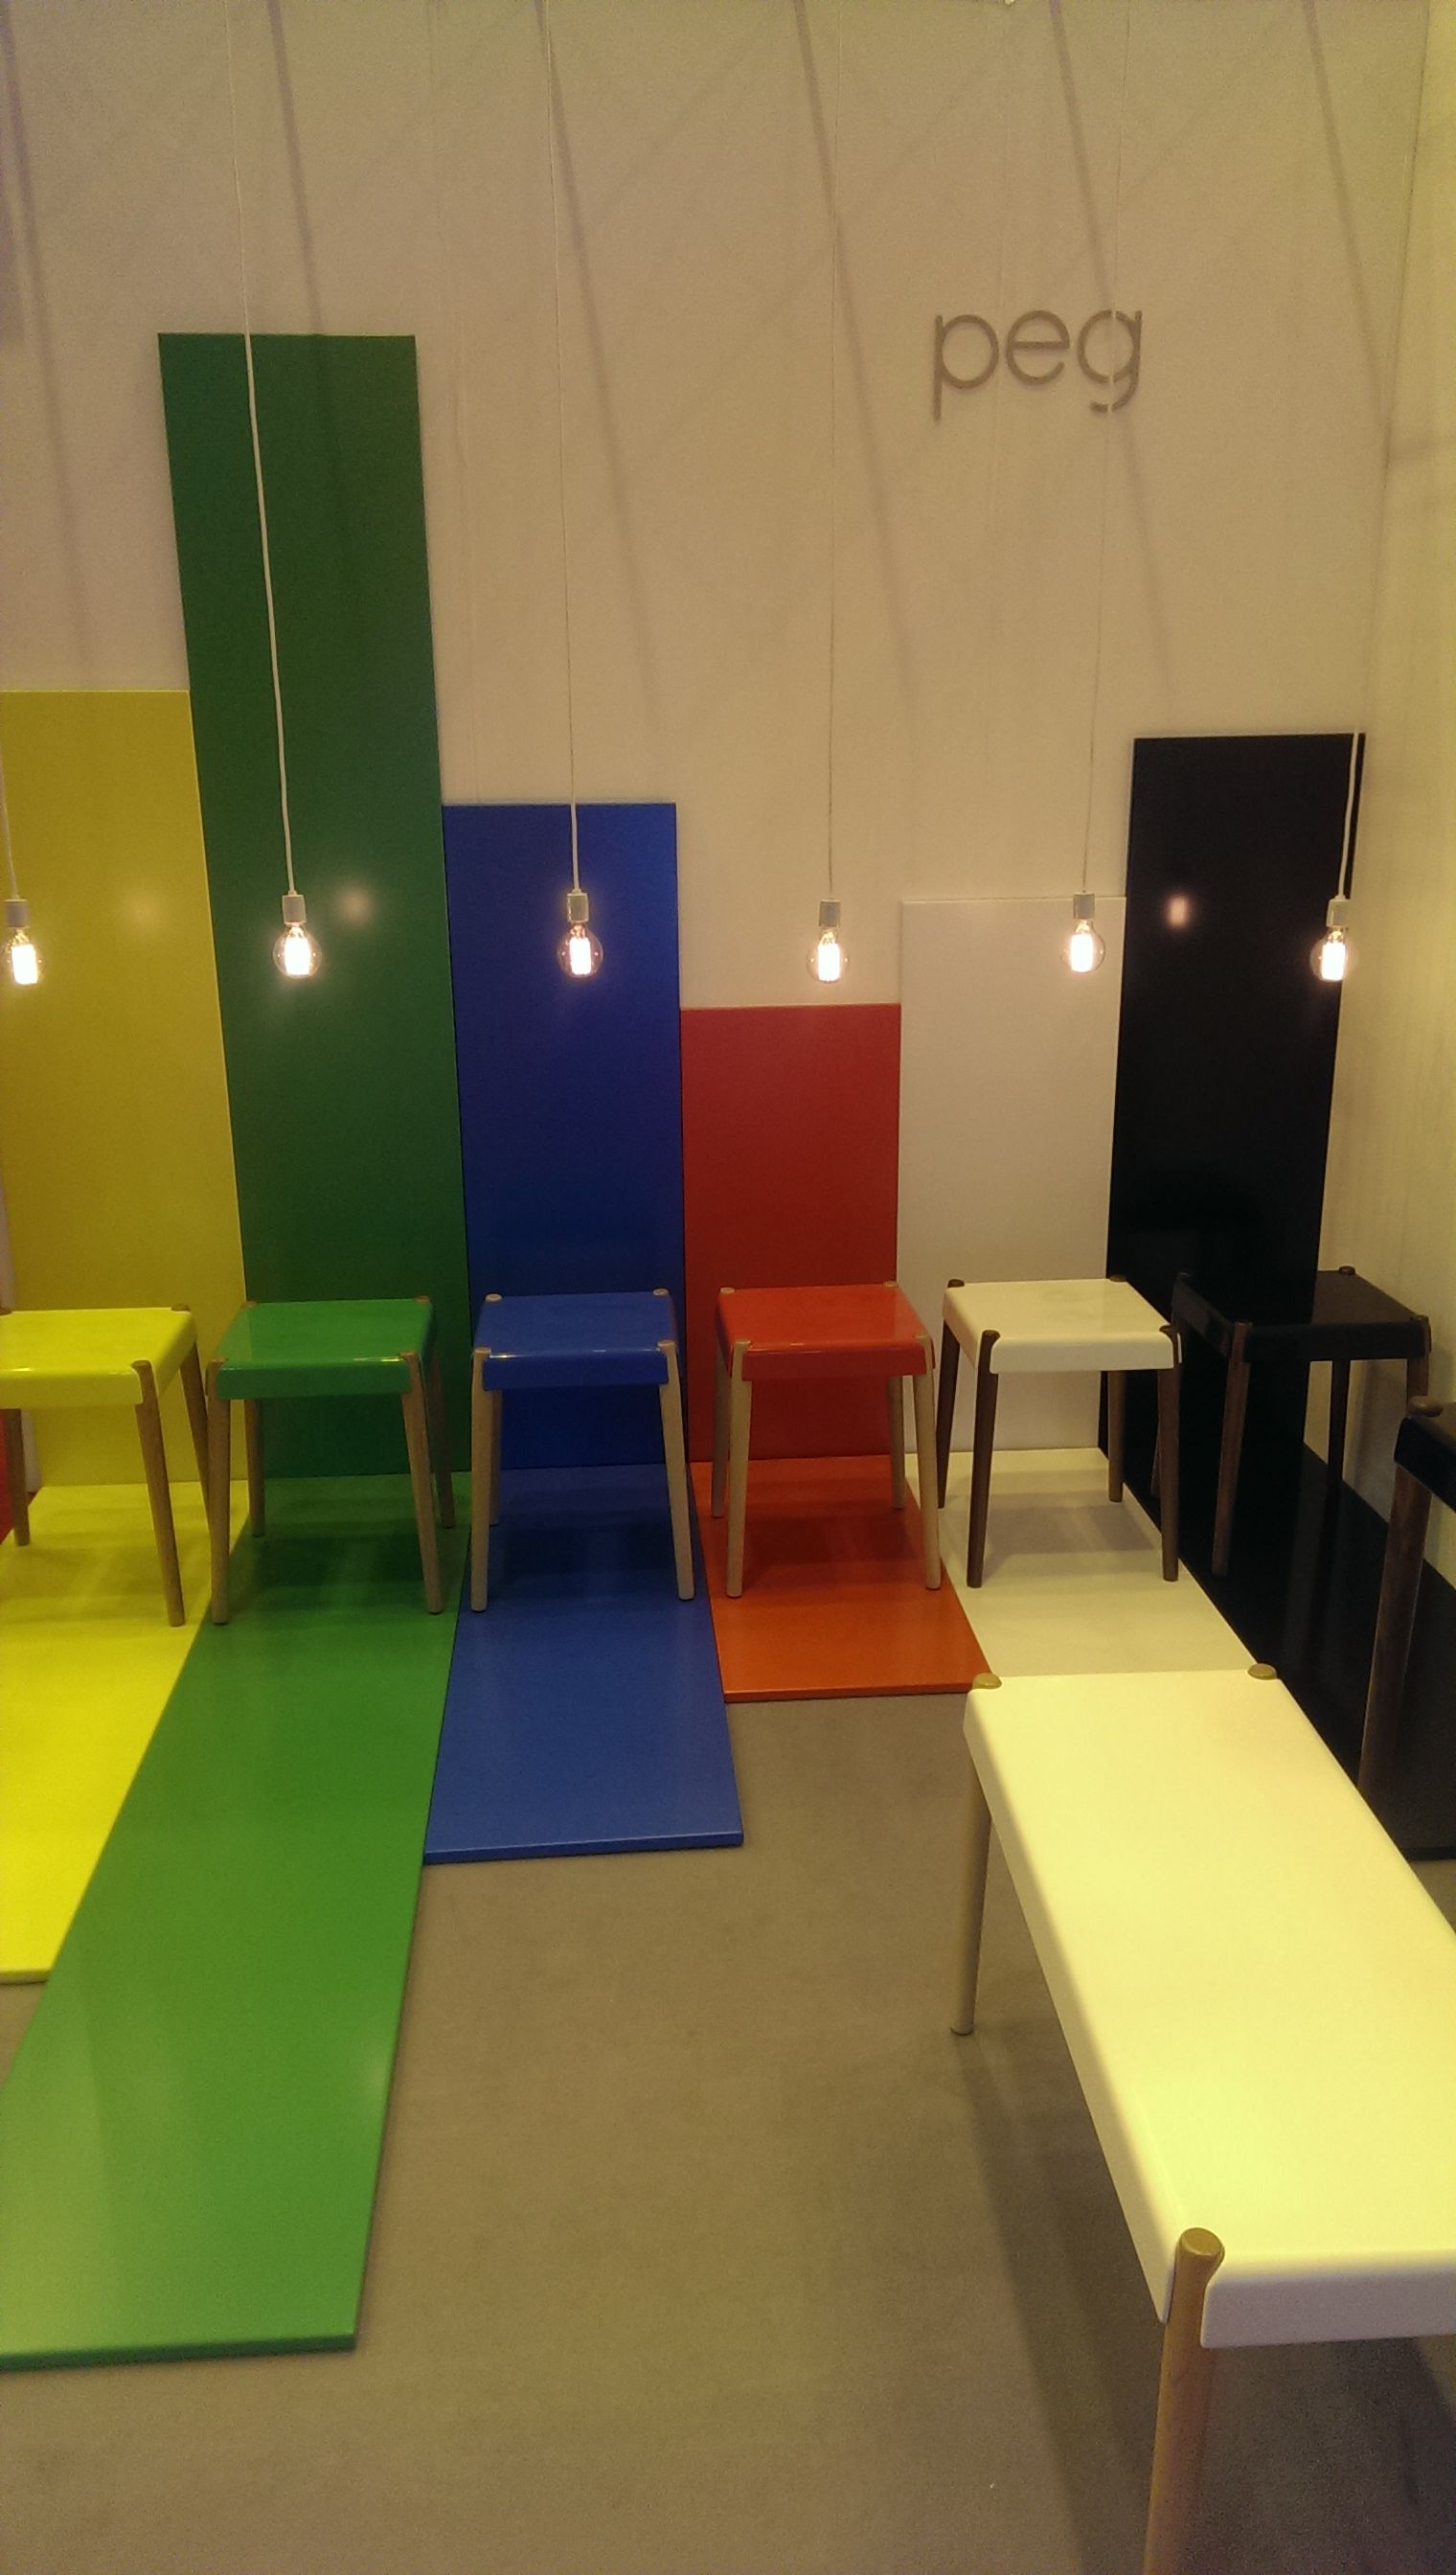 These easy to assemble Peg stools and benches from @brightpotato are just beautiful  LDF14 100% Design